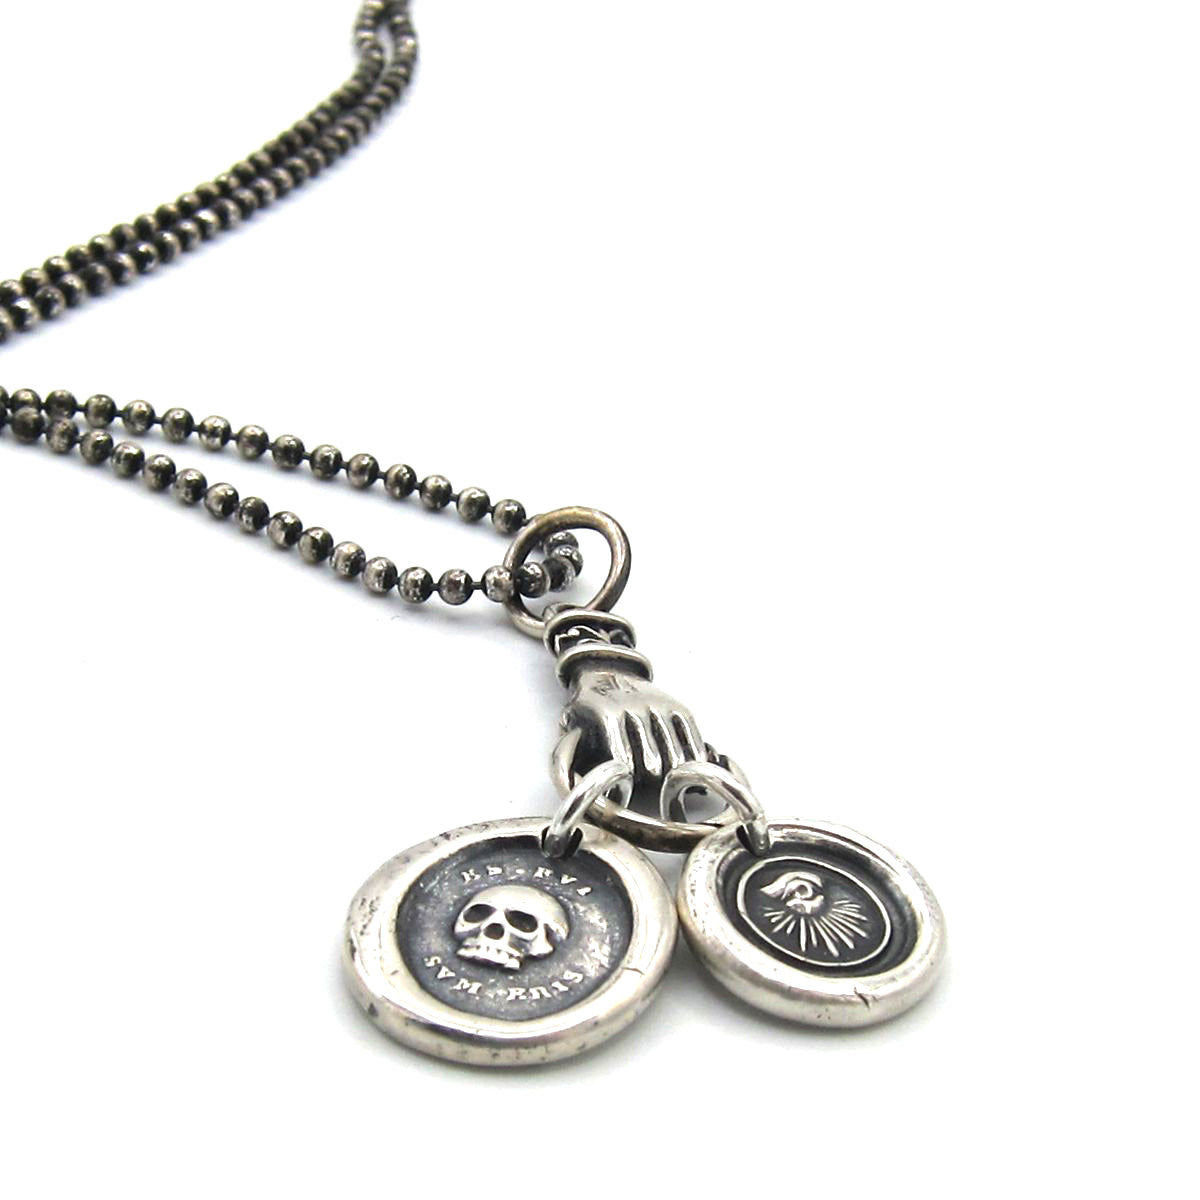 Muse rocktonica jewellery london mens luxury ball chain necklace with silver hand clutching a skull and all mozeypictures Images